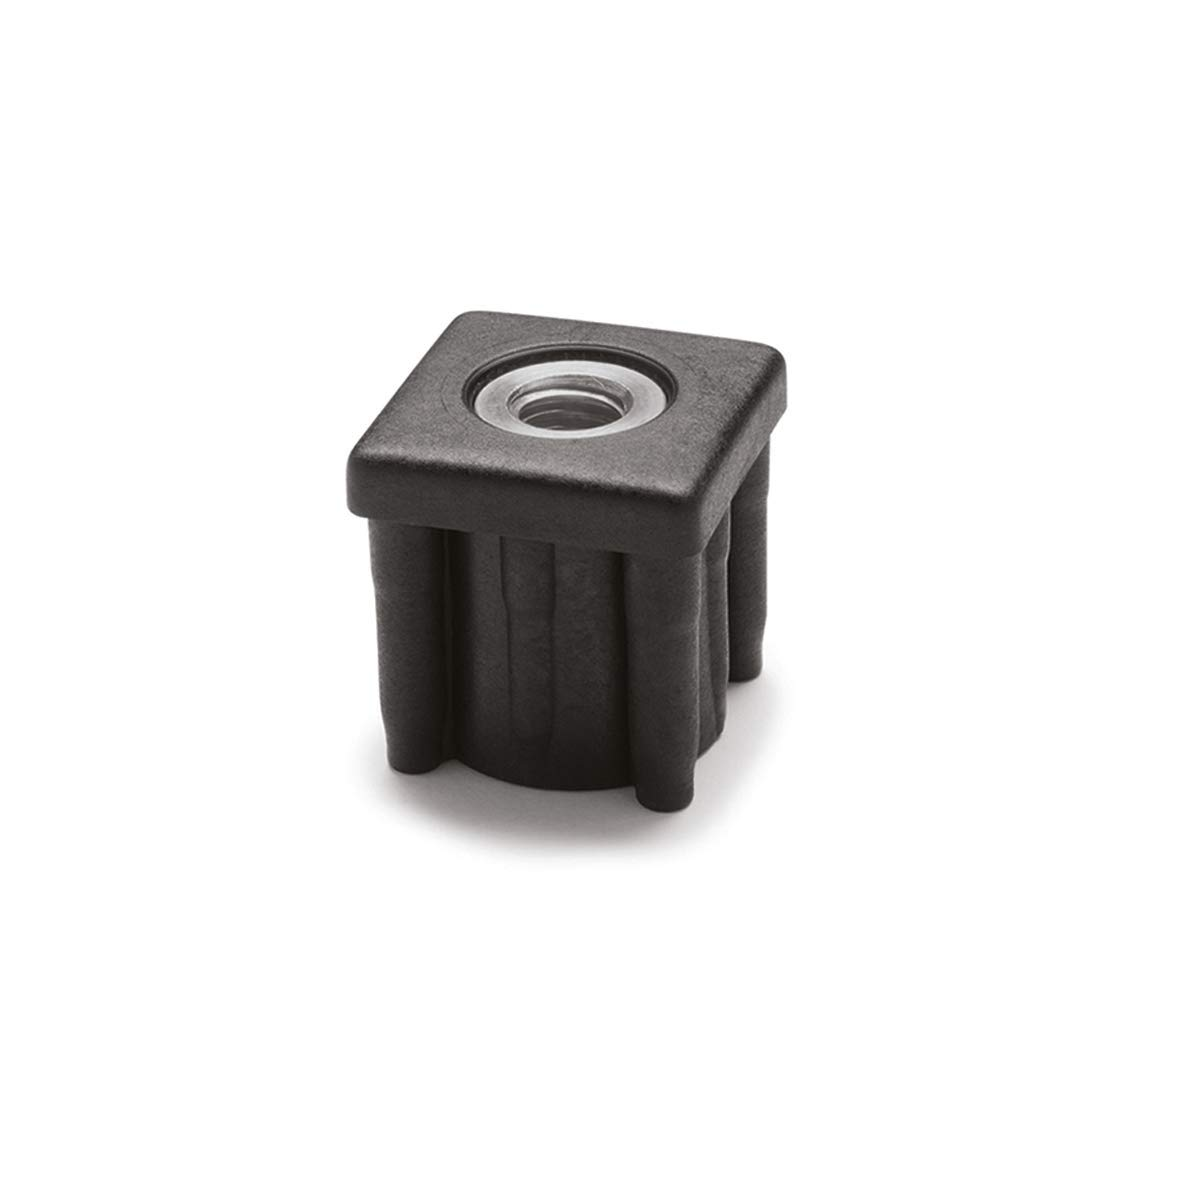 JW Winco 448V150V1268T Series EN 448S Plastic Black Square Type Threaded Tube End with Molded-in Insert, 1/2-13 Thread Size, 1.50'' Item Length, 1.26'' Inside Square, 1349 Pounds Static Load by JW Winco